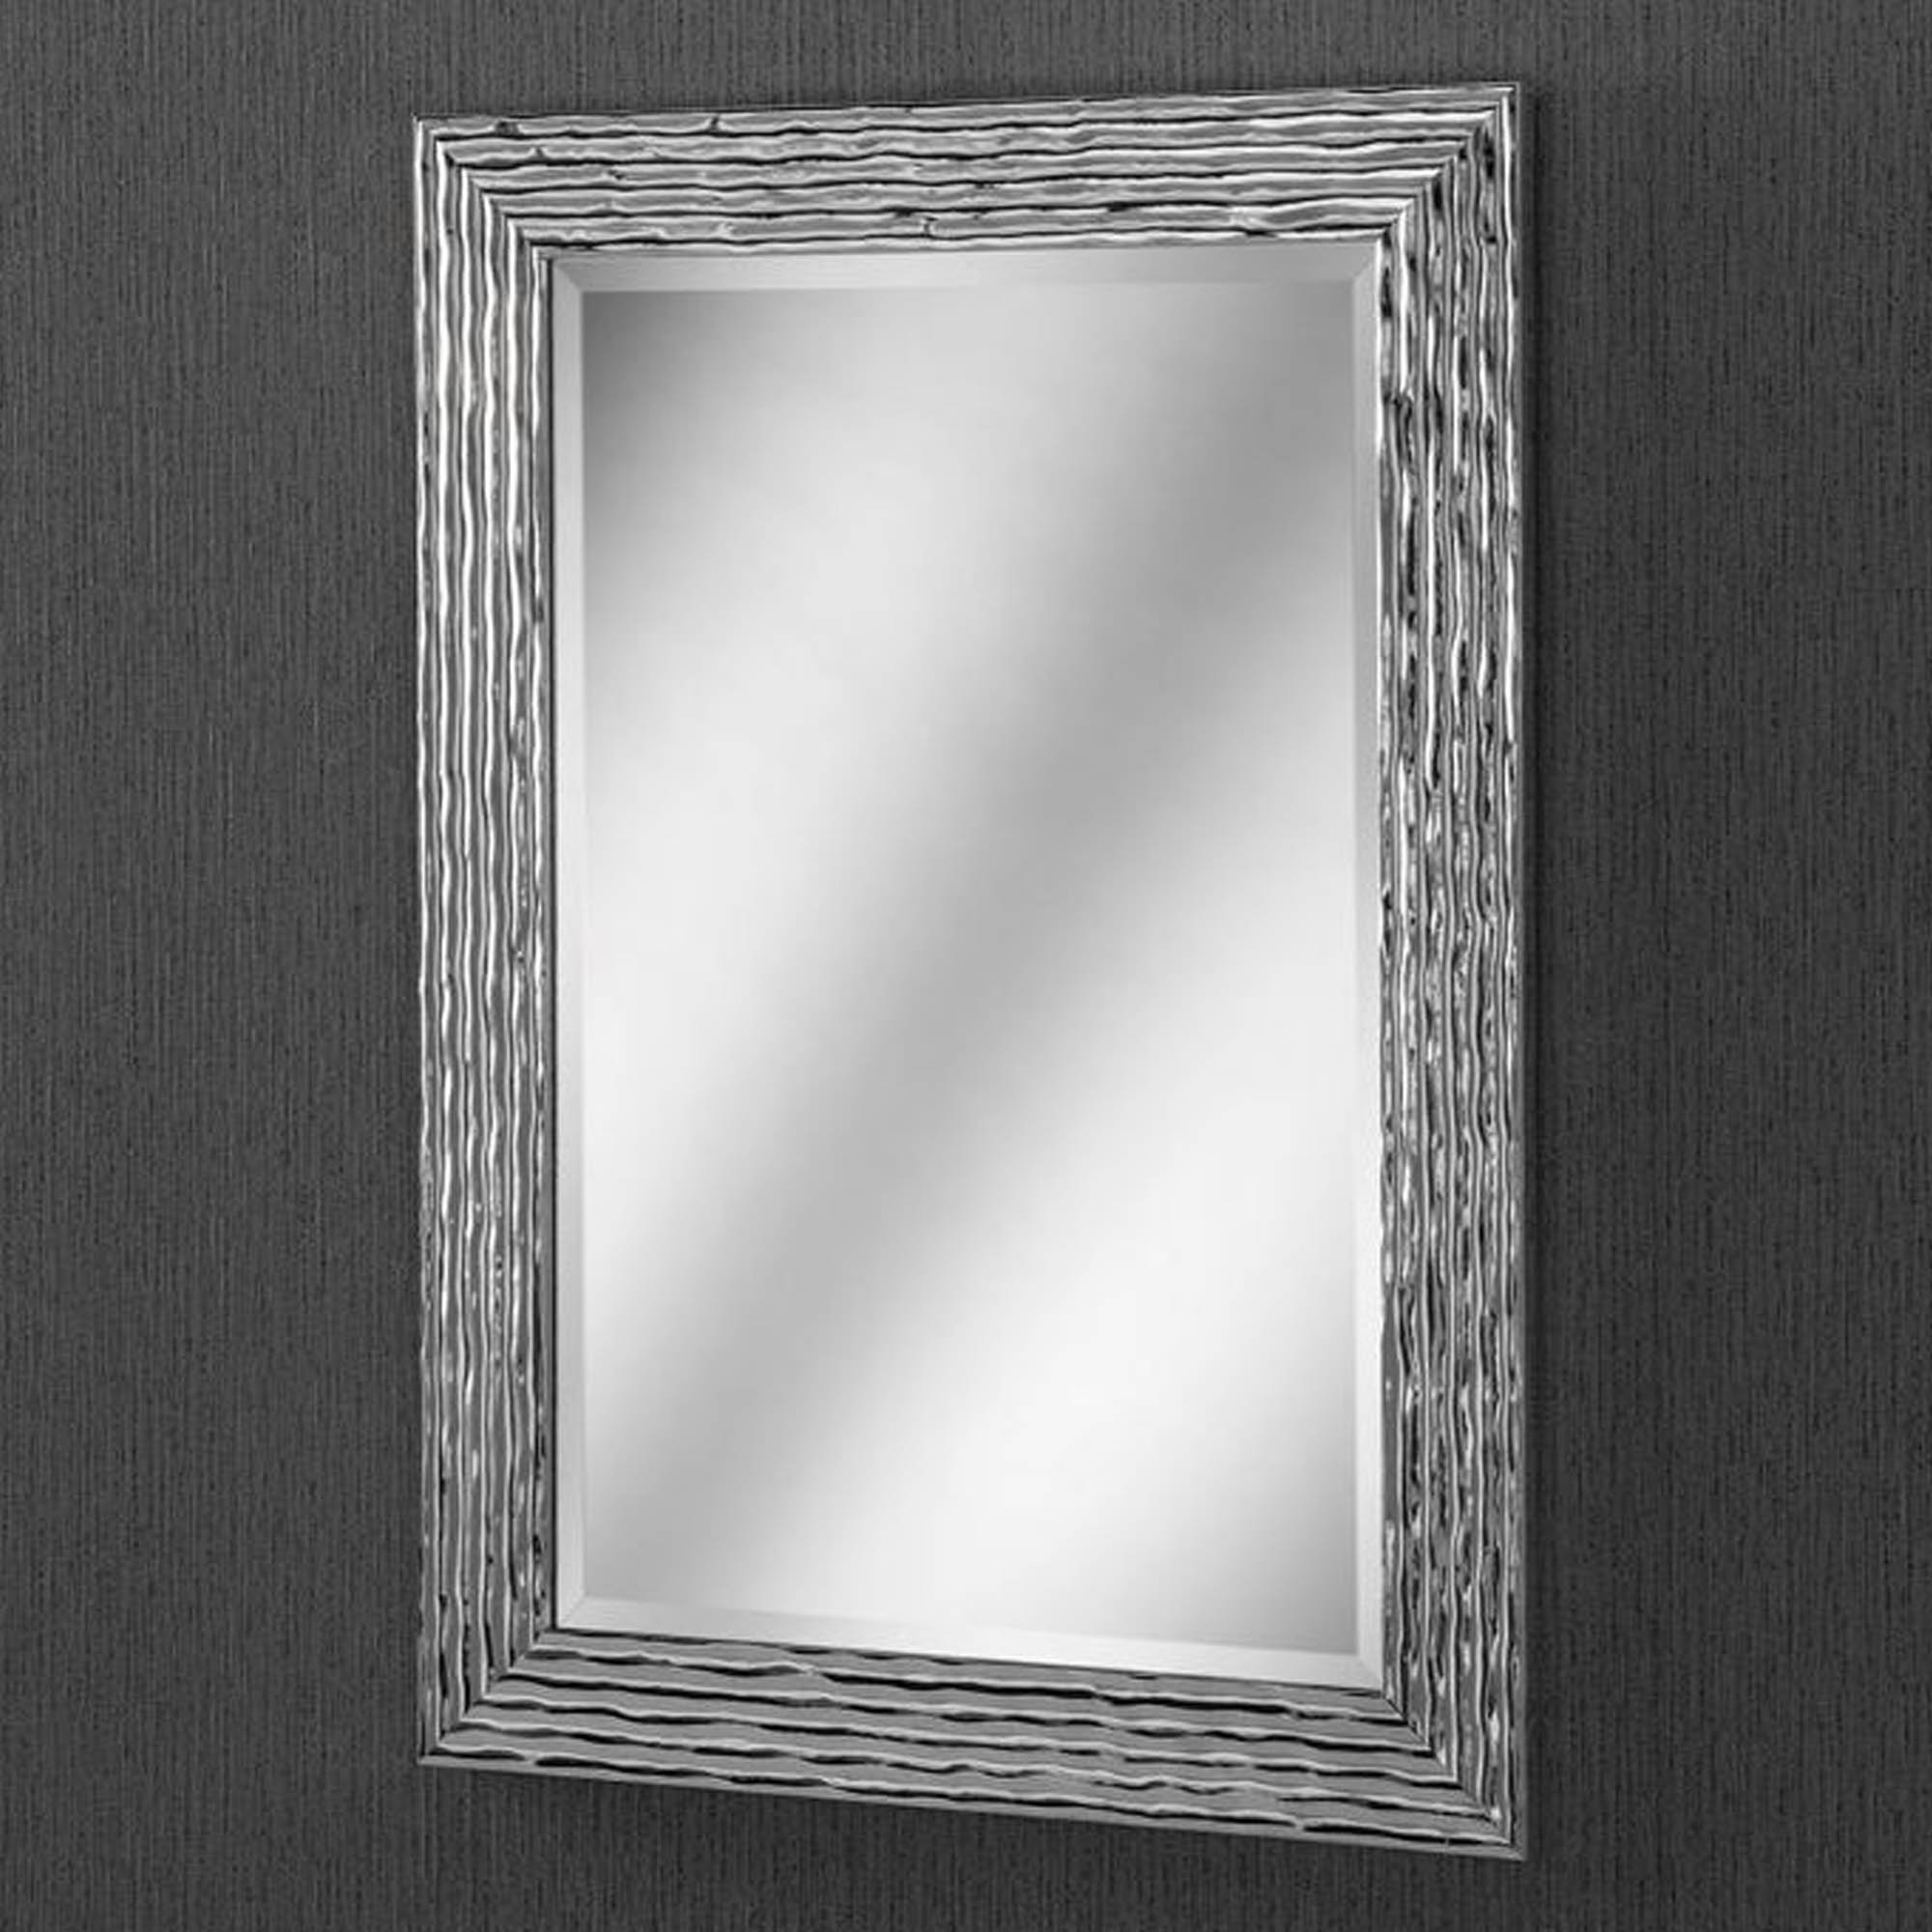 Trendy Chrome Wall Mirrors For Chrome Silver Textured Wall Mirror (View 3 of 20)